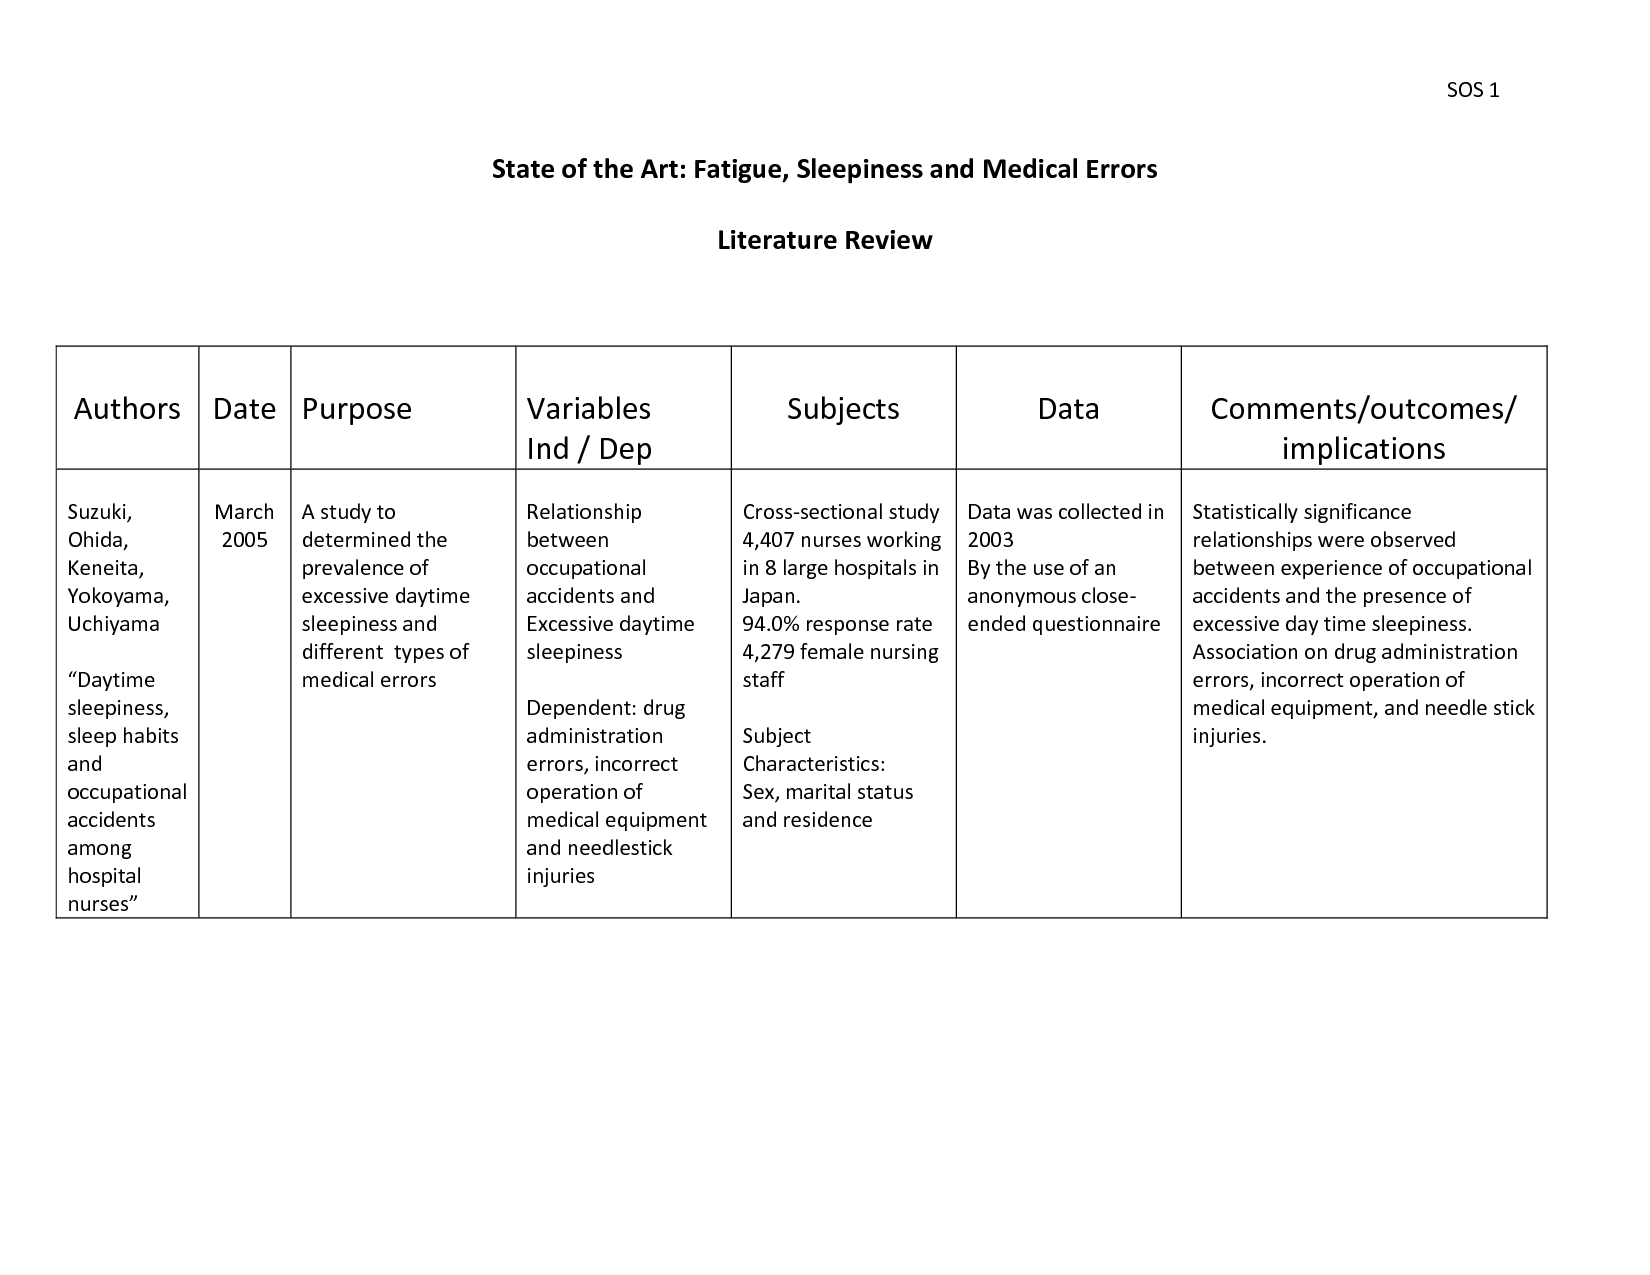 Literature Review Matrix Science writing, Literature